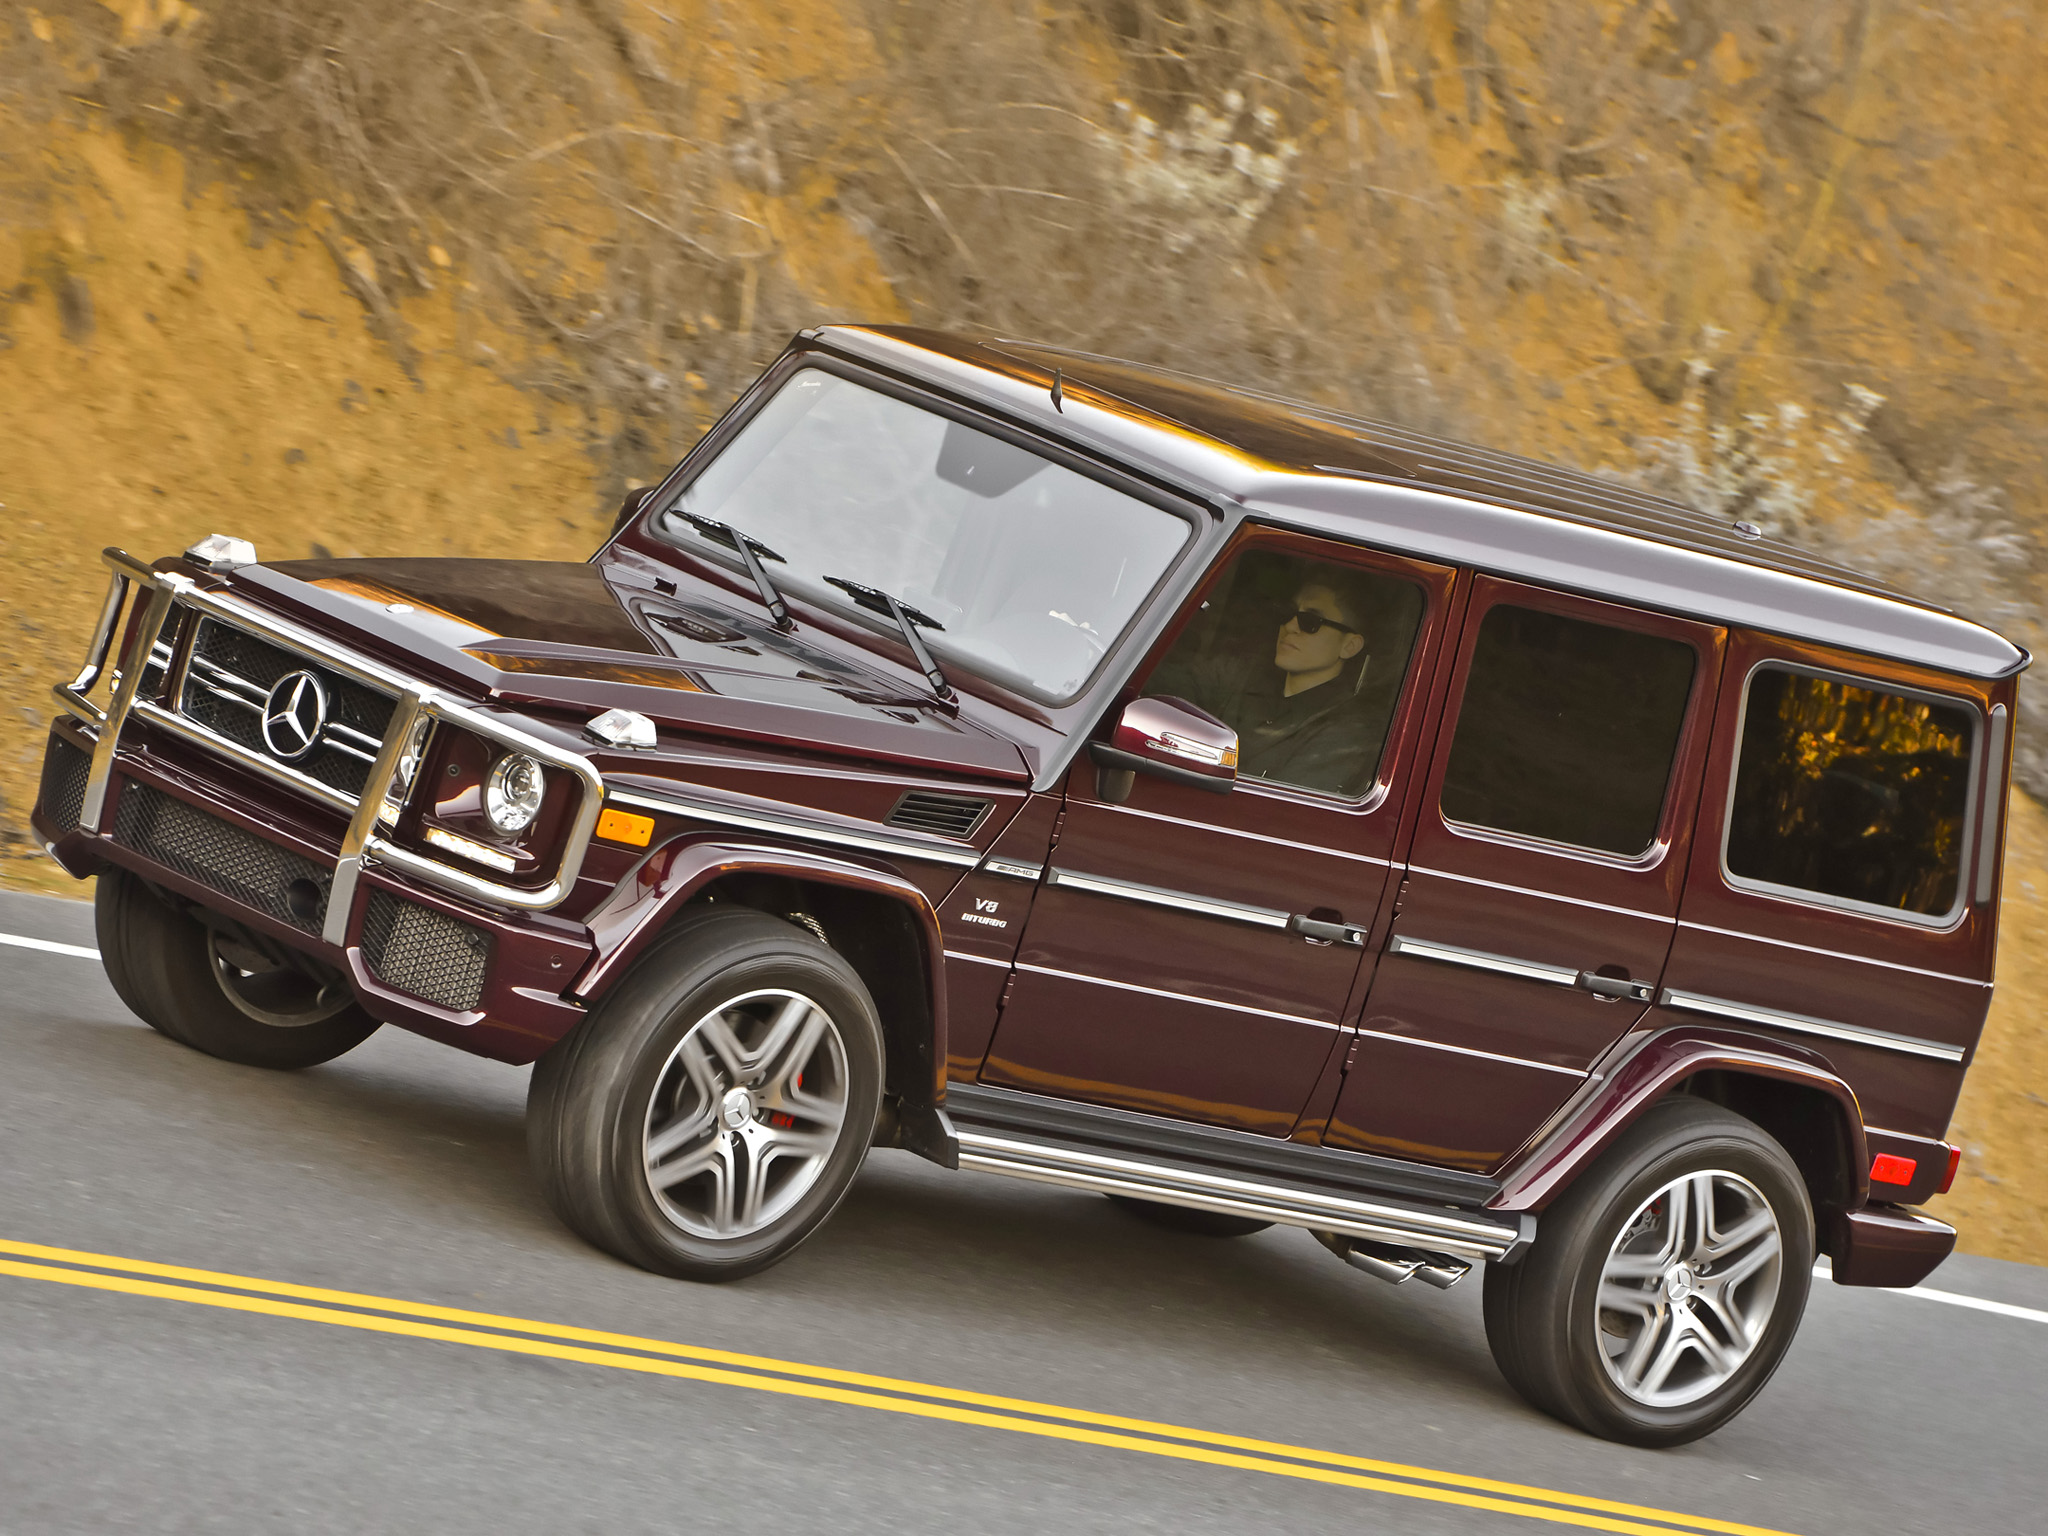 Mercedes benz g63 amg picture 100278 mercedes benz for G63 amg mercedes benz